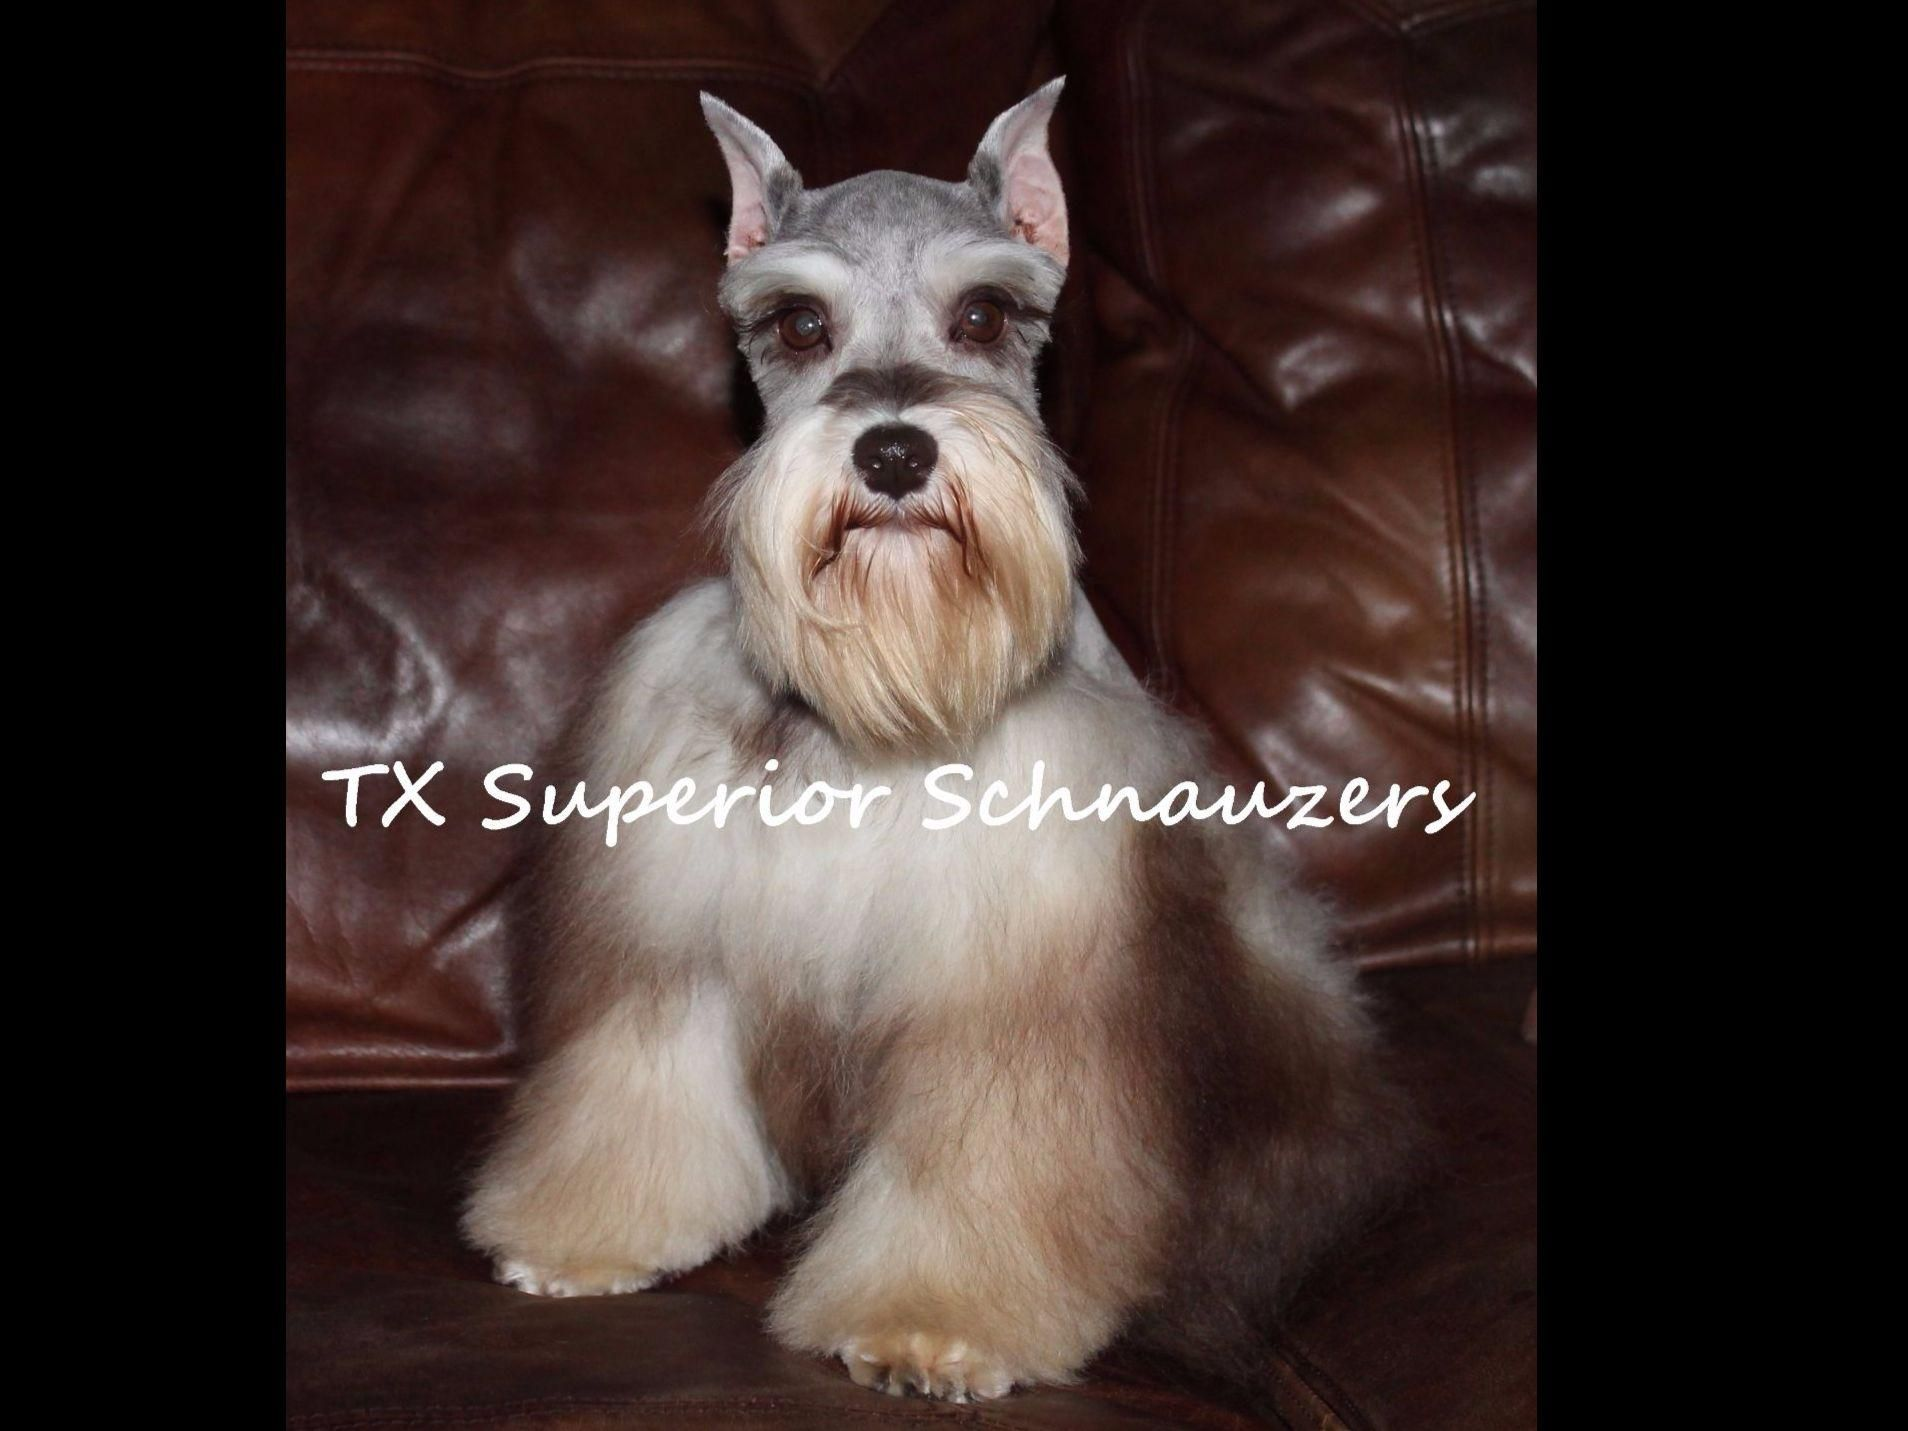 Shana Mendez Is From Texas And Breeds Miniature Schnauzers Akc Proudly Supports Dedicated And Responsible Breeders We Encourage All Pro Puppy Owner Canine Akc